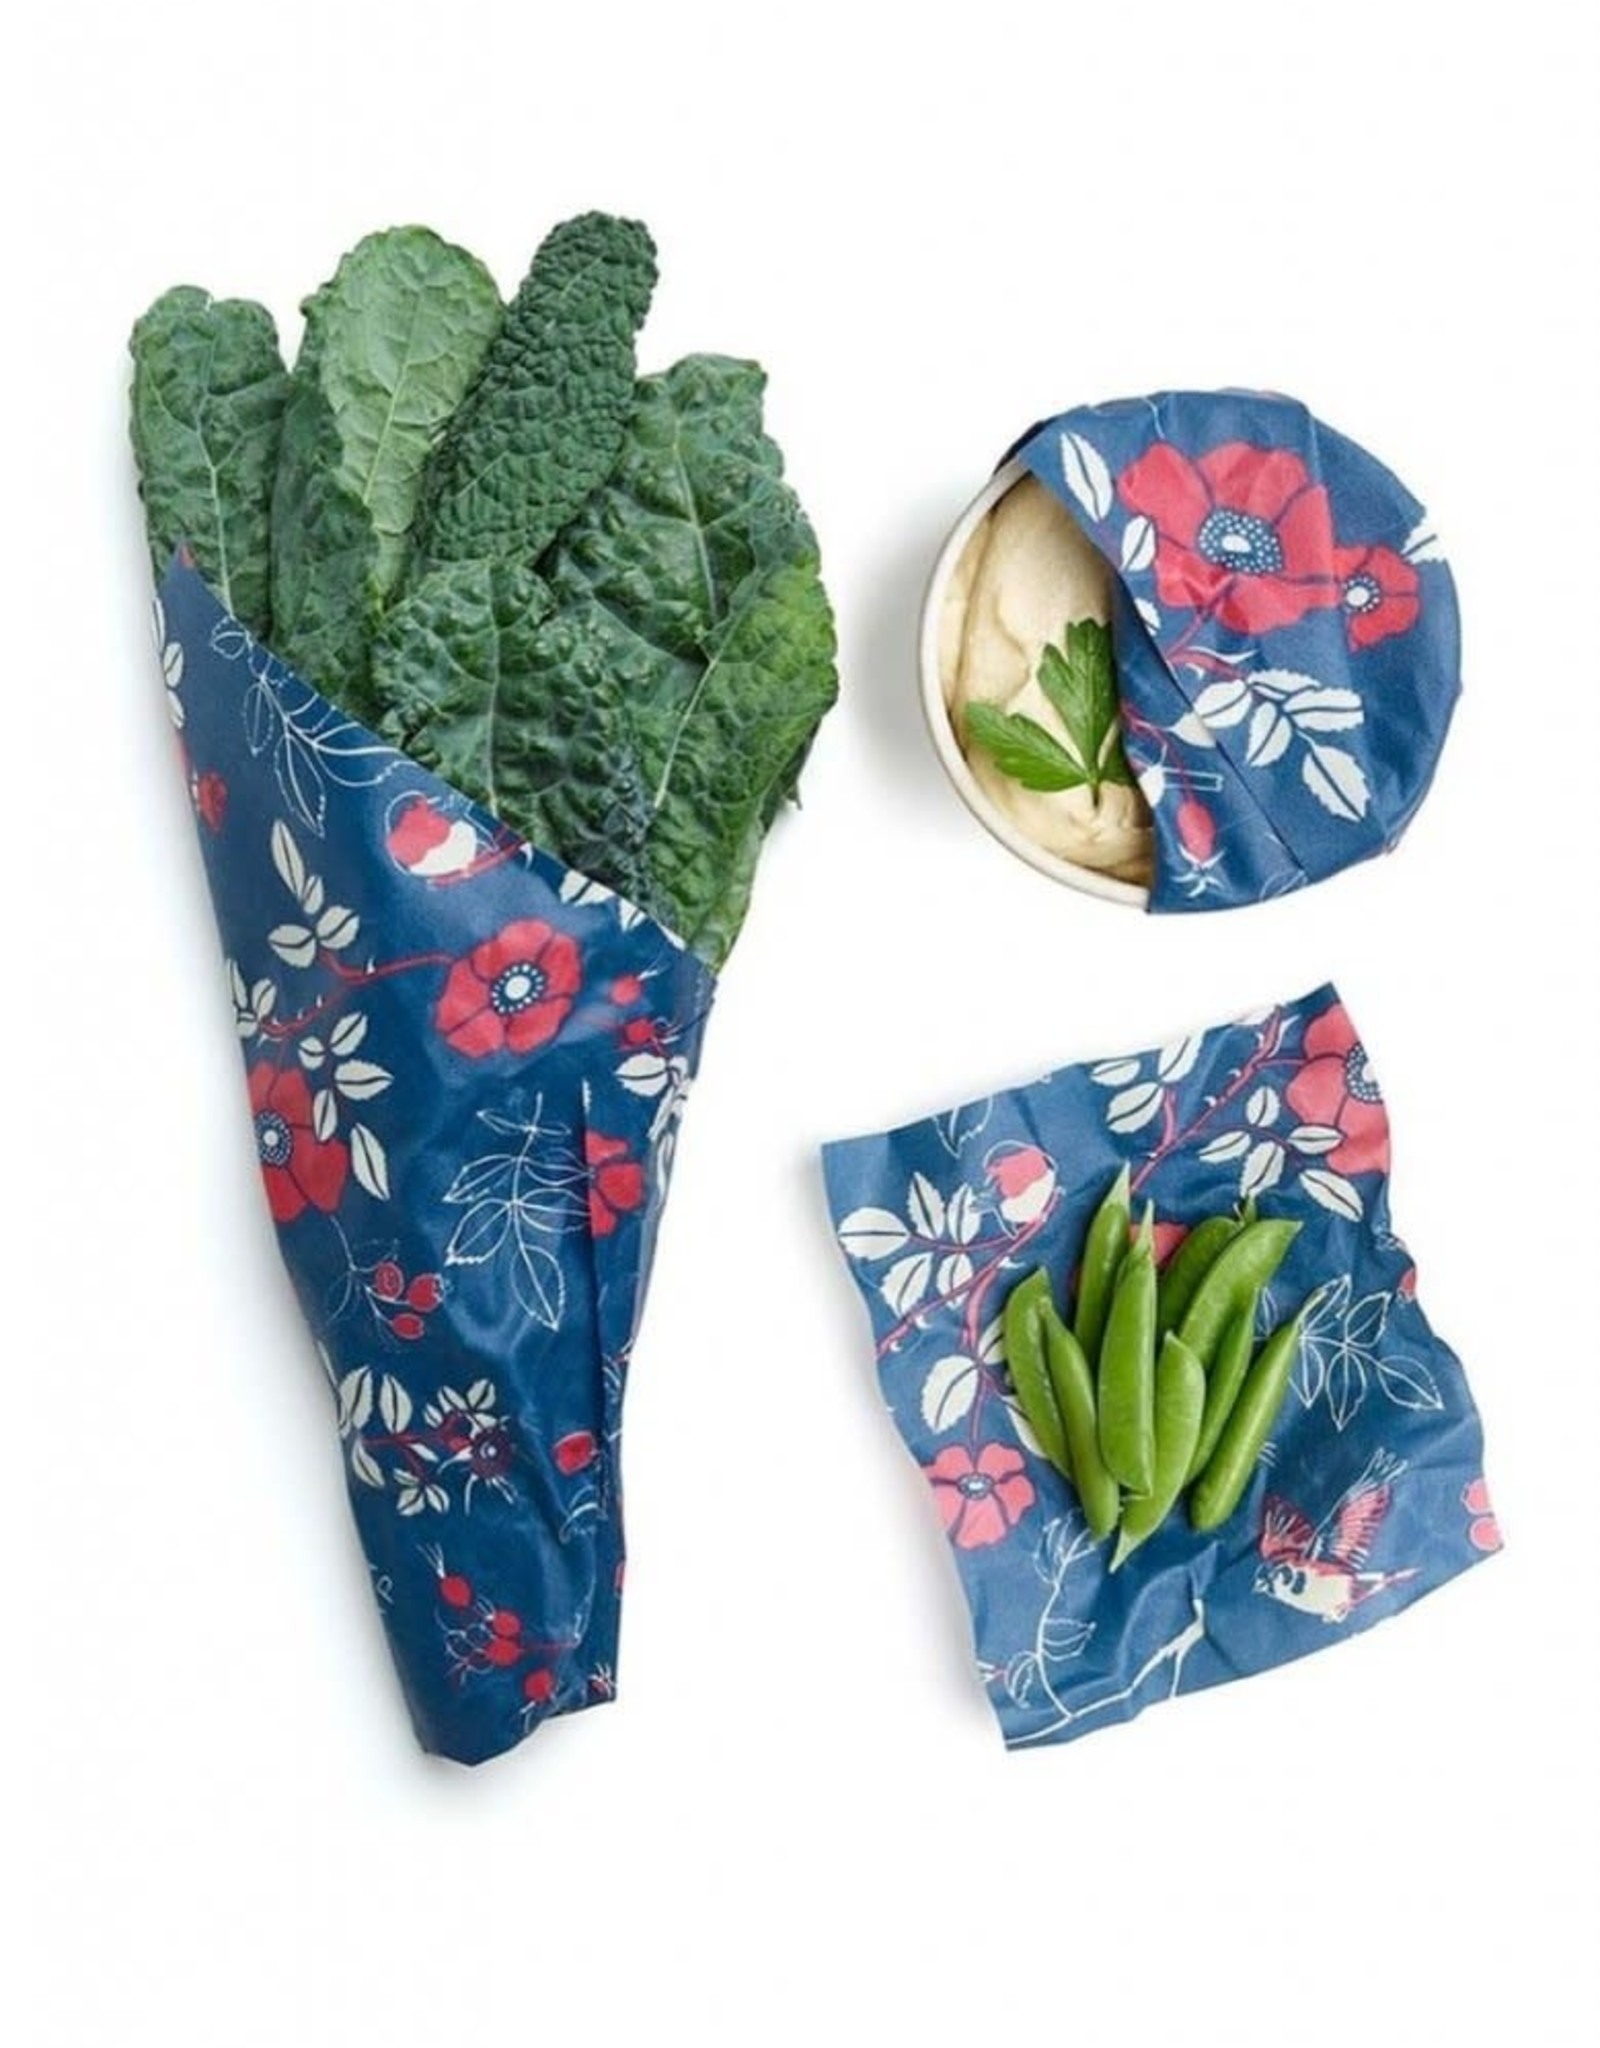 Bee's Wrap Botanical & Birds Assorted 3 Pack